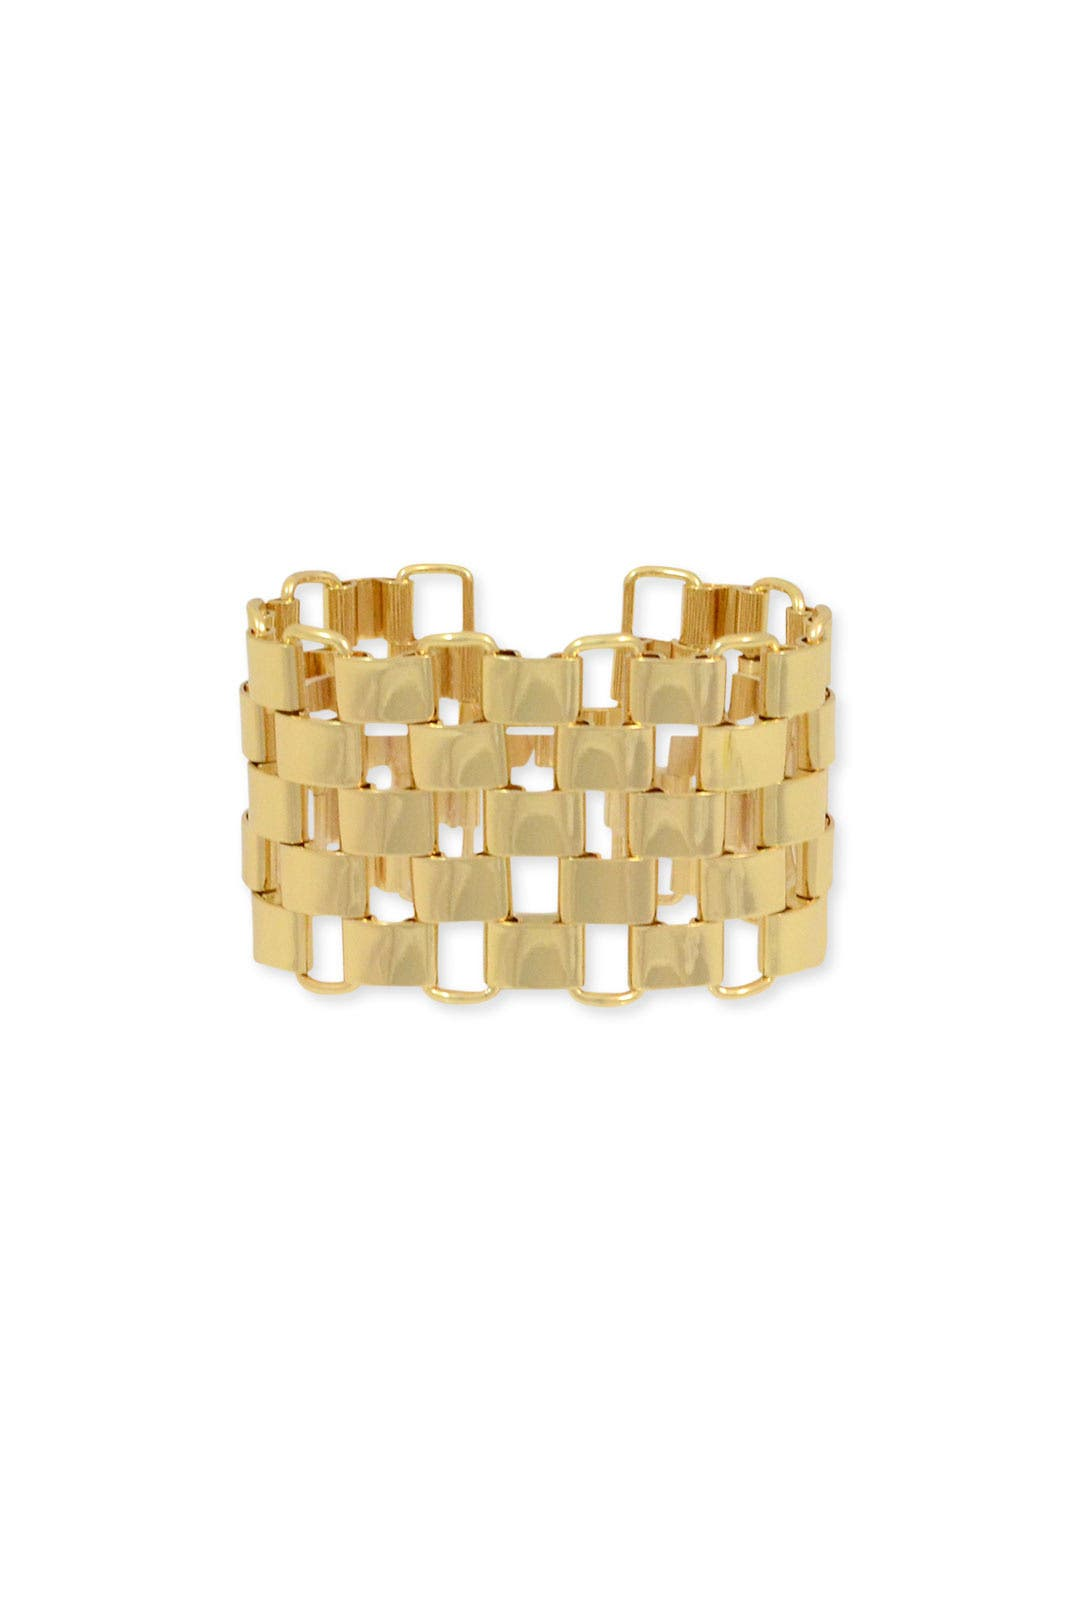 Checkmate Bracelet by Slate & Willow Accessories